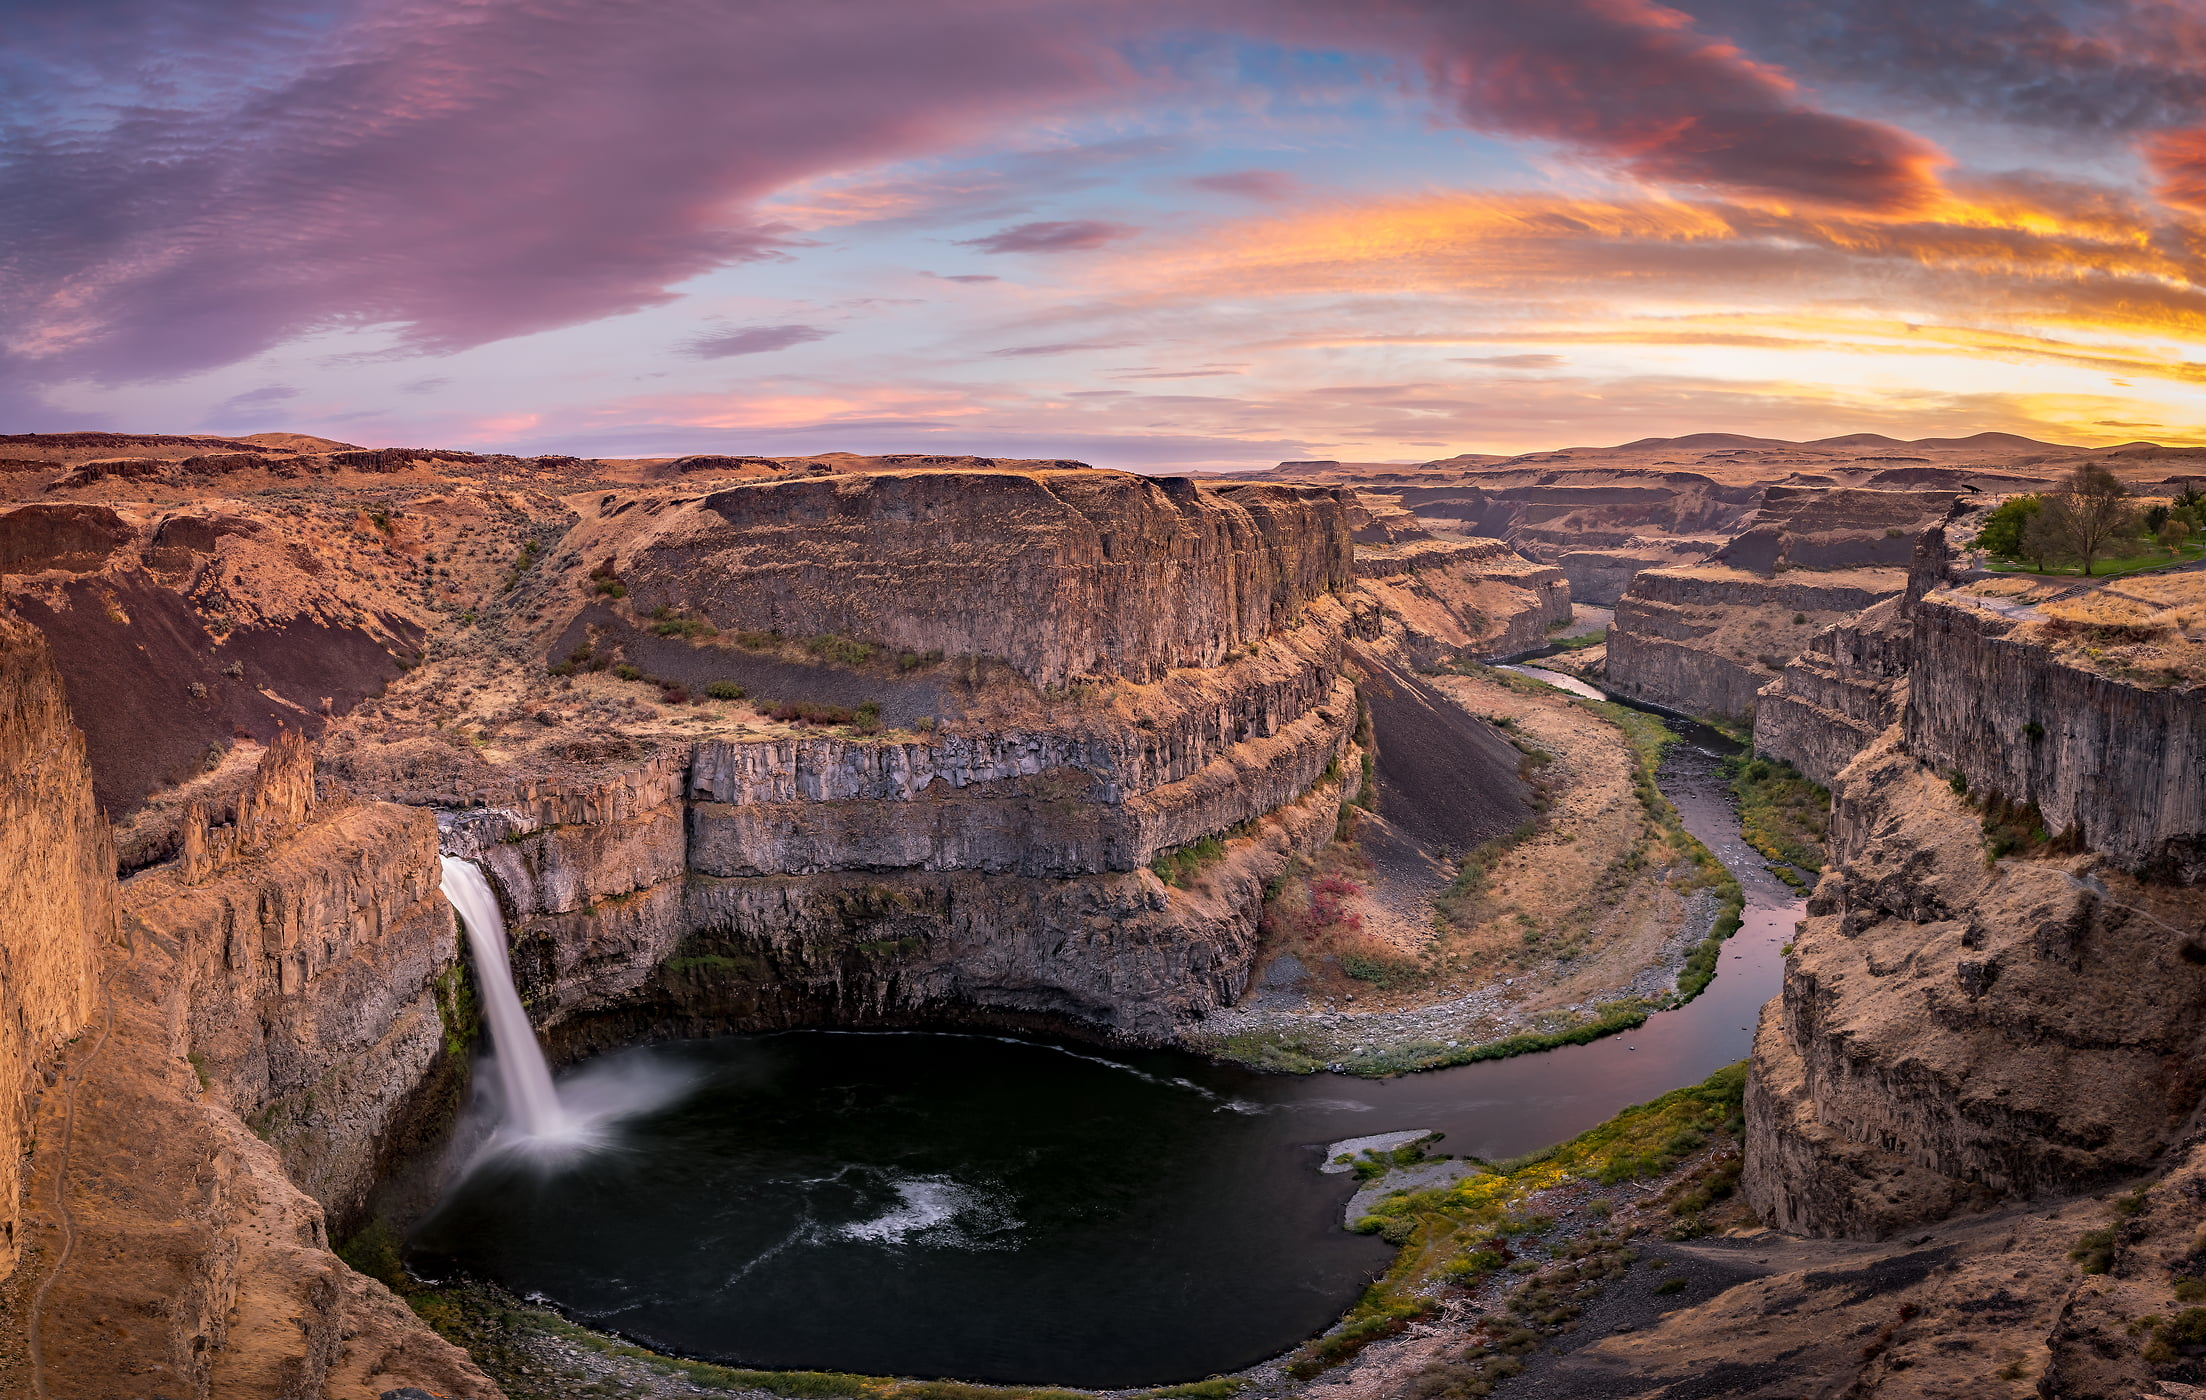 140 megapixels! A very high resolution, large-format VAST photo print of a canyon with a waterfall; landscape photograph created by Justin Katz in Palouse Falls, Washington